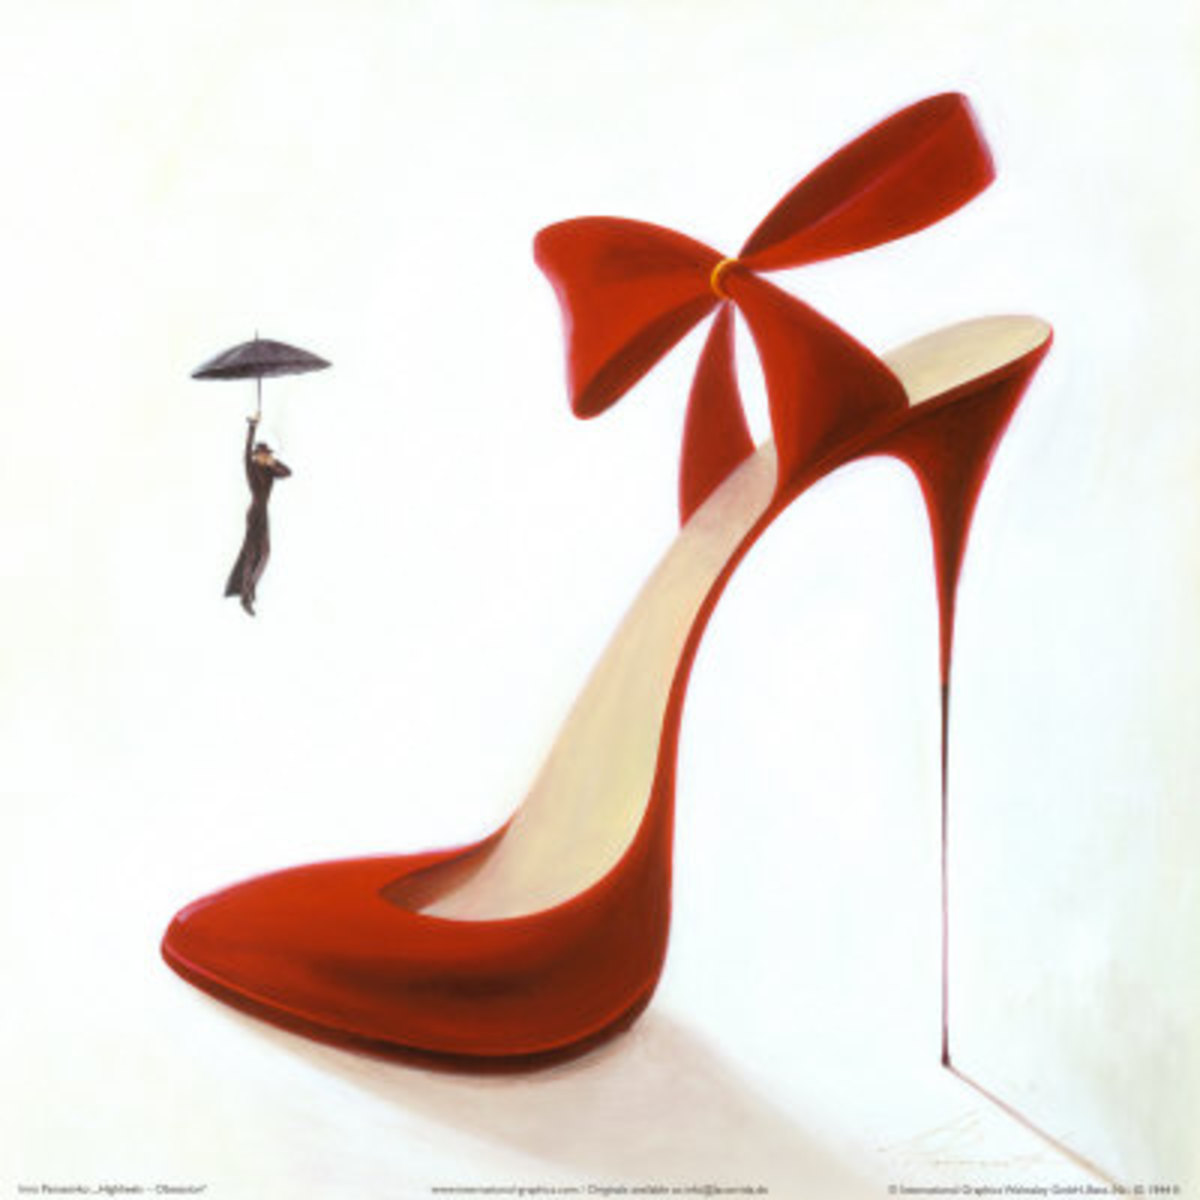 High heels do look nice and appealing indeed, but only when they're clean and not broken...